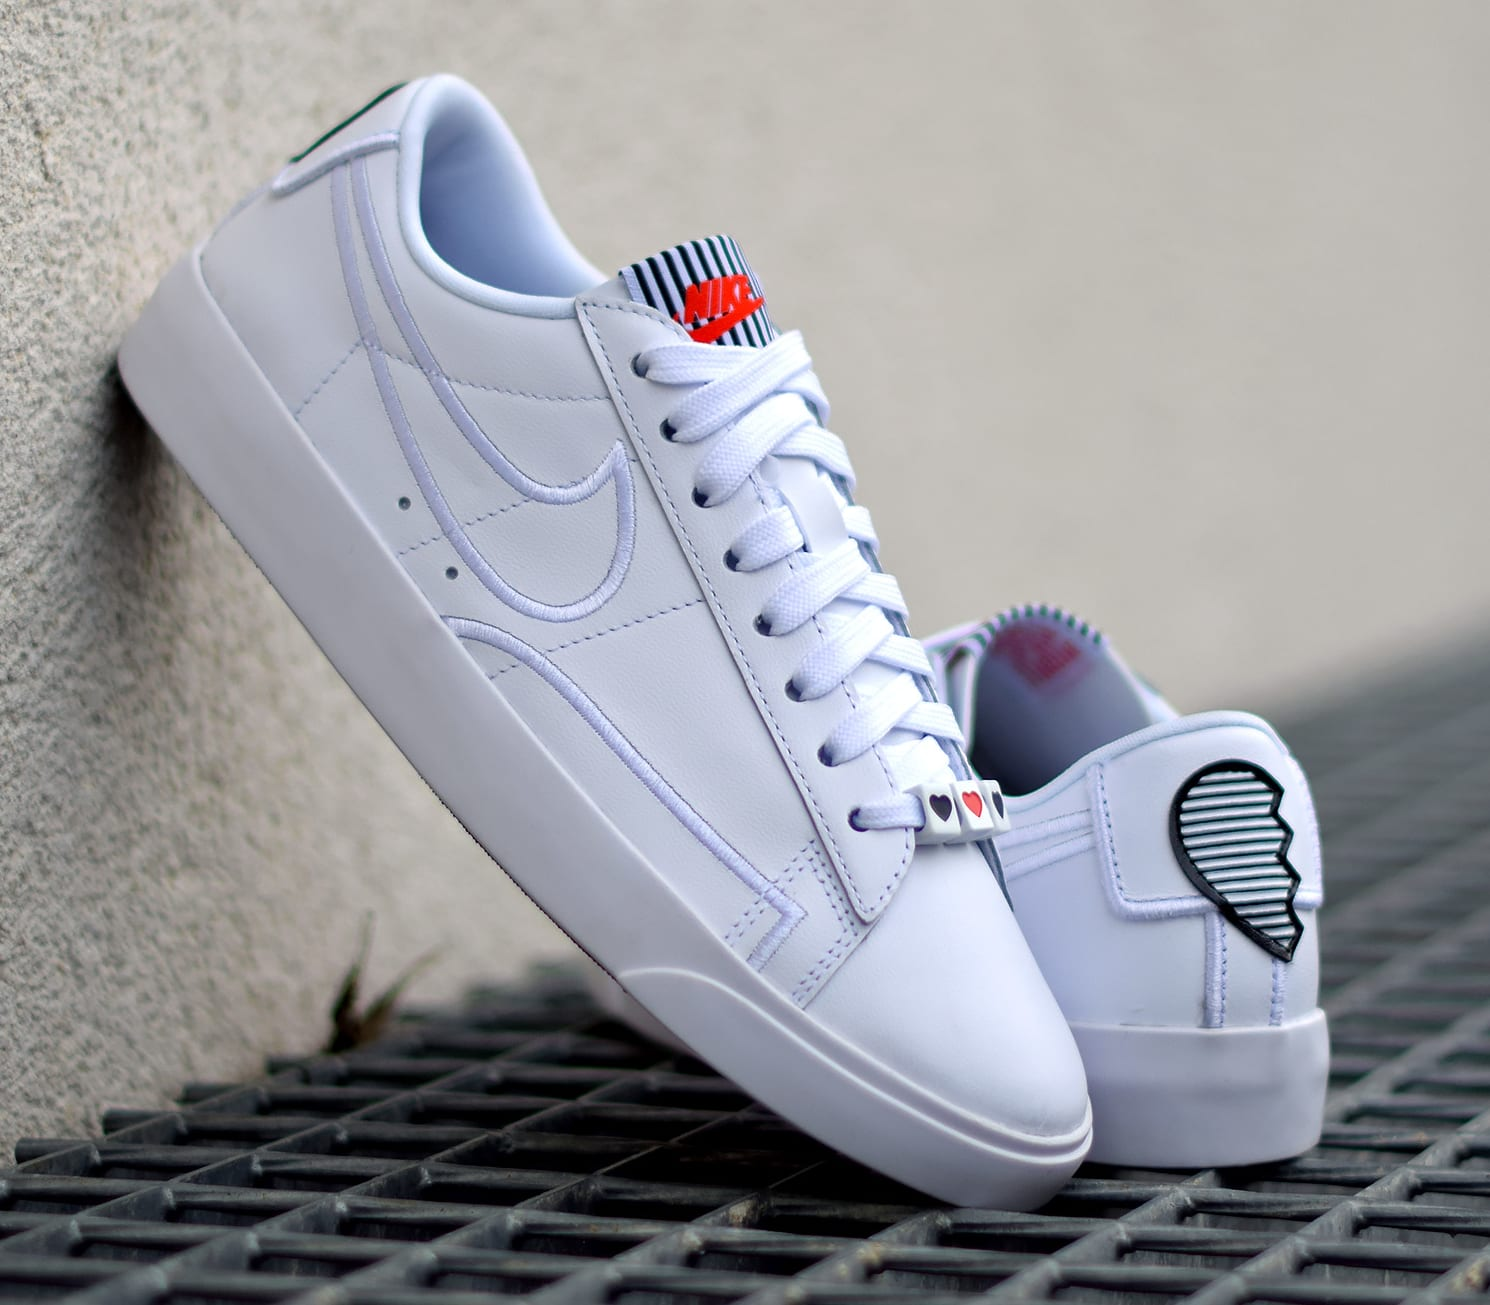 nike-valentines-pack-2018-air-force-blazer-4